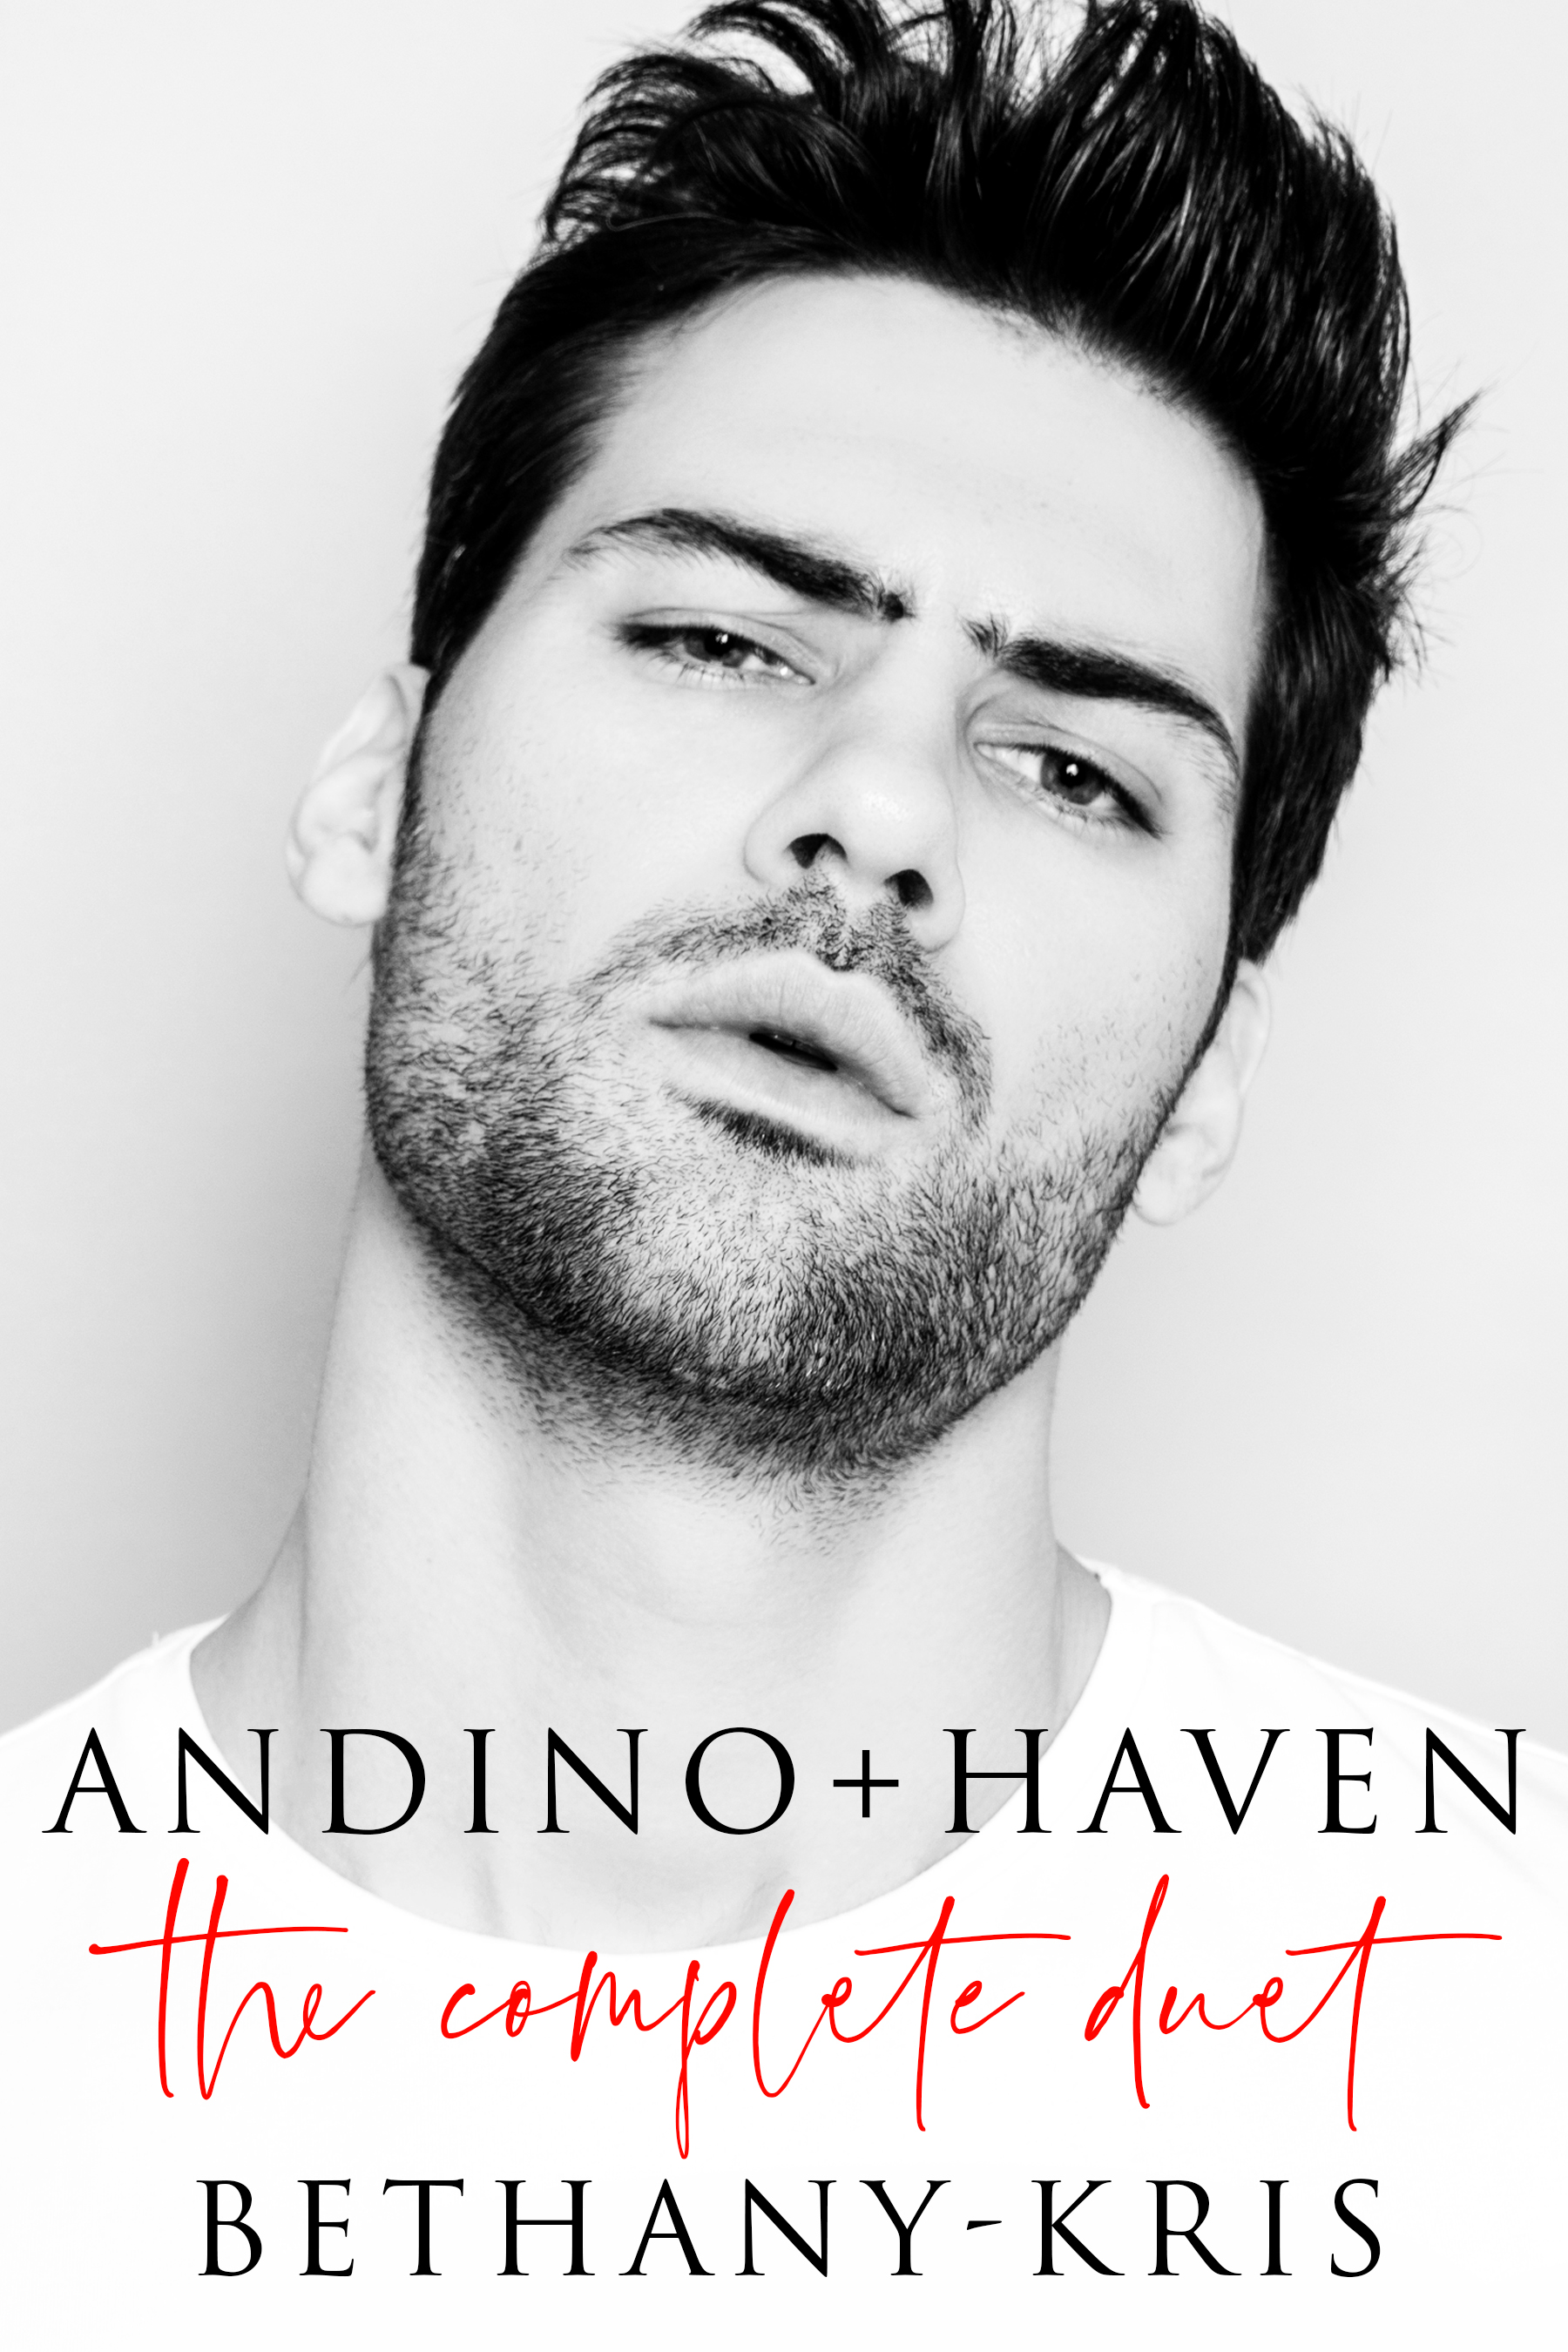 Bethany-Kris - Andino + Haven The Complete Duet